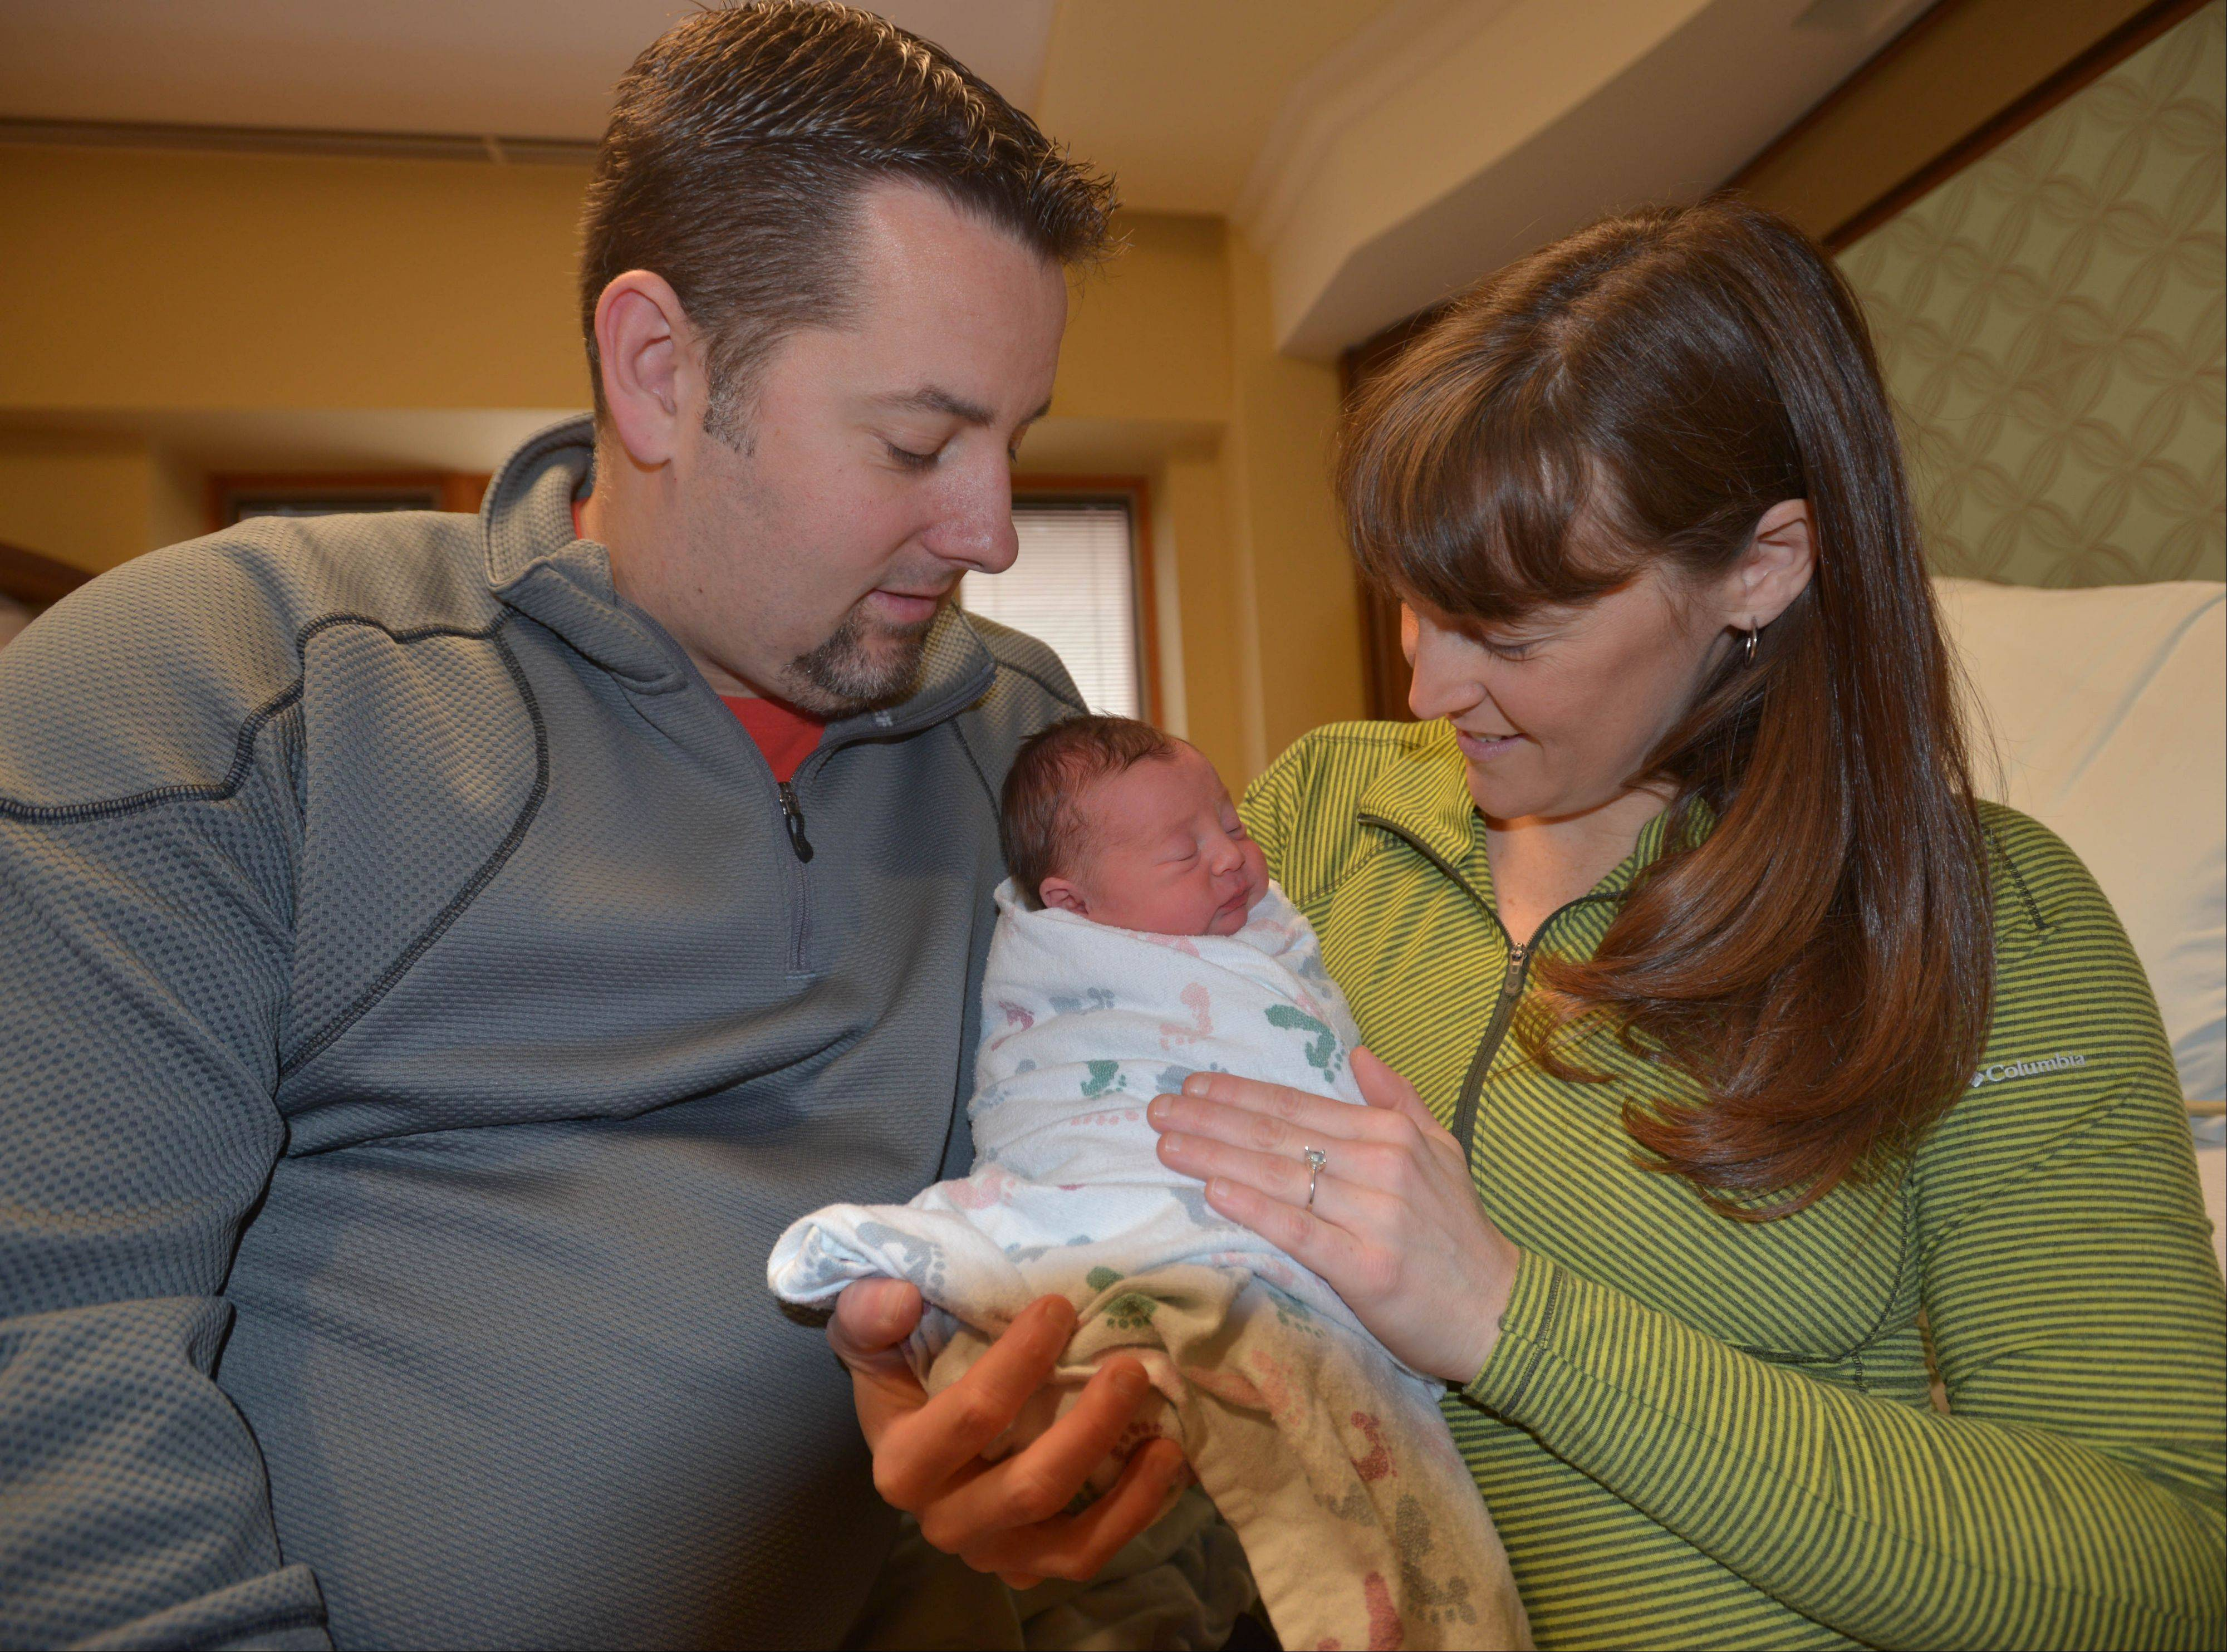 Steve and Kelle Lalko of Aurora hold their newborn daughter, Ella Marie, at Edward Hospital in Naperville Wednesday. Ella was born at 1:11 a.m. weighing 5.8 pounds and 18 inches long.